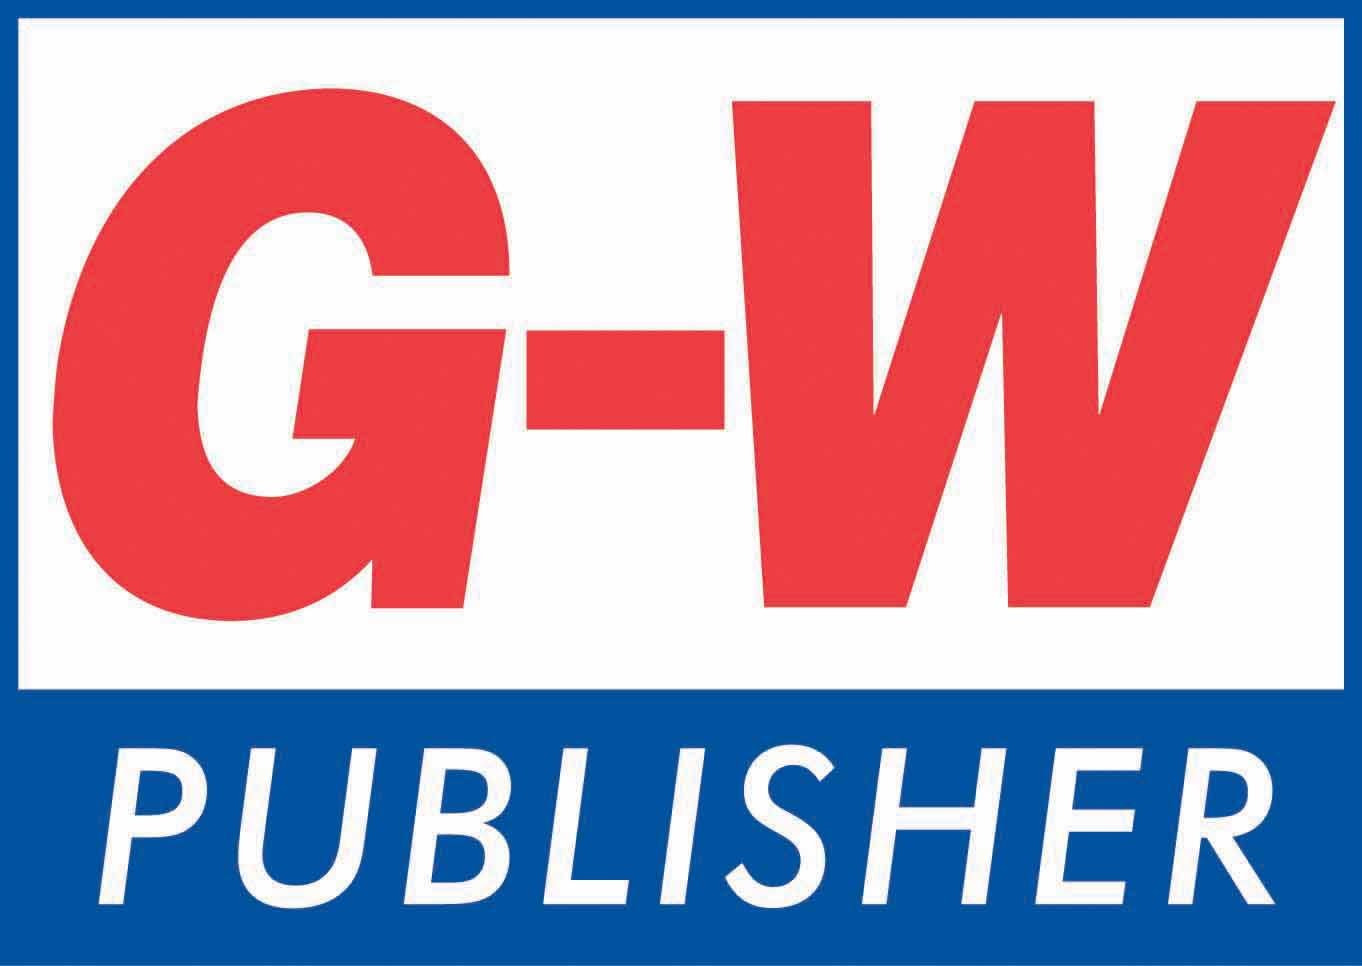 Goodheart-Willcox Publisher